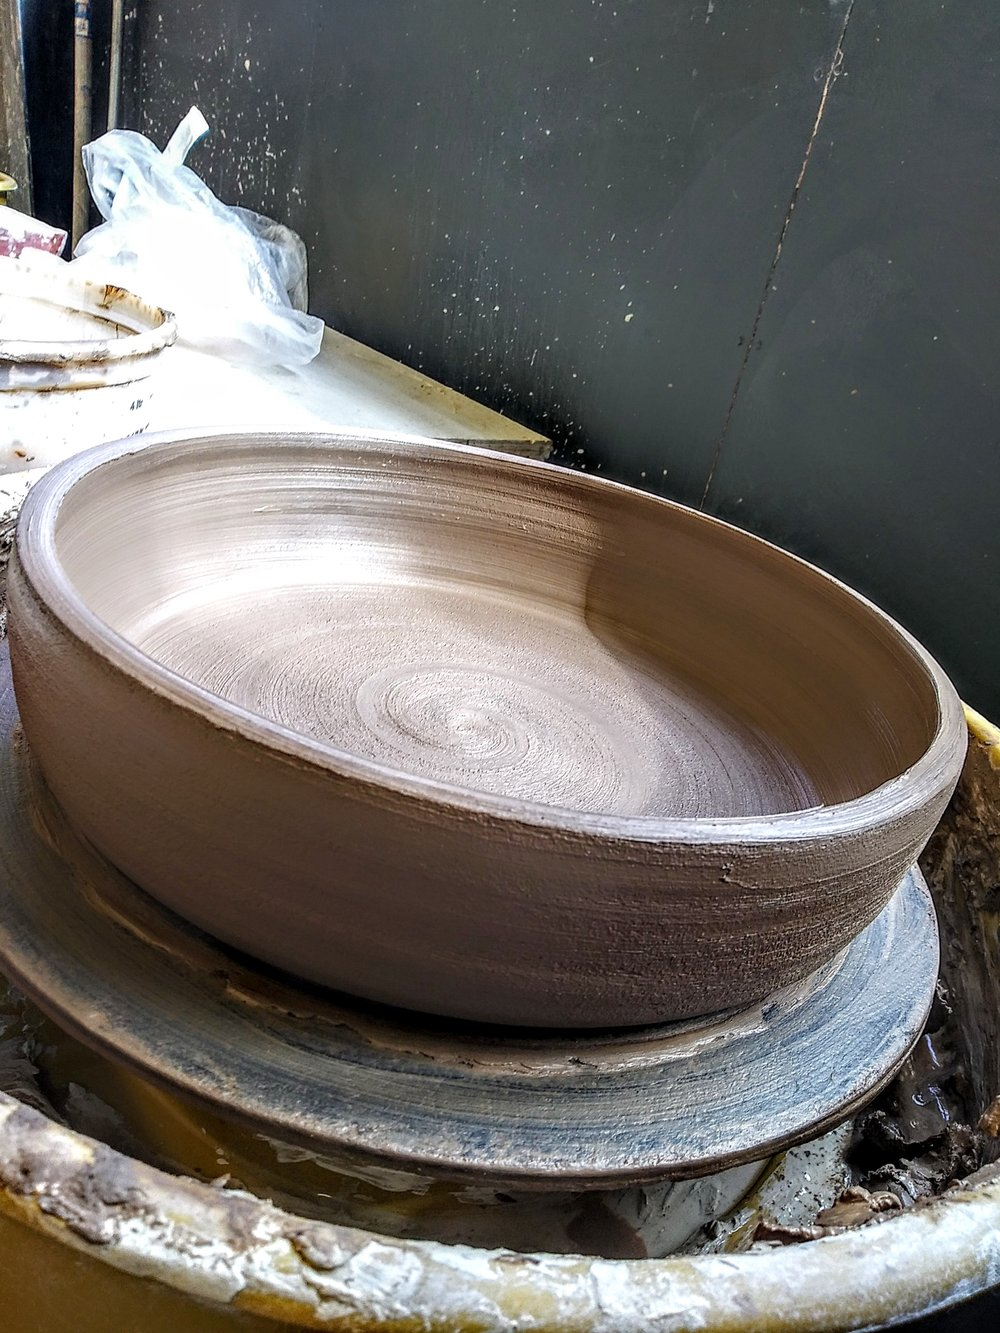 Little Clay Studio's bowls are food safe and generous in size for serving entrees in at parties, or for a special addition to meal times. Gorgeous, simplistic, painterly, modern, and minimalist. Anthropologie, Madewell, Domino Magazine, and Kinfolk inspired.